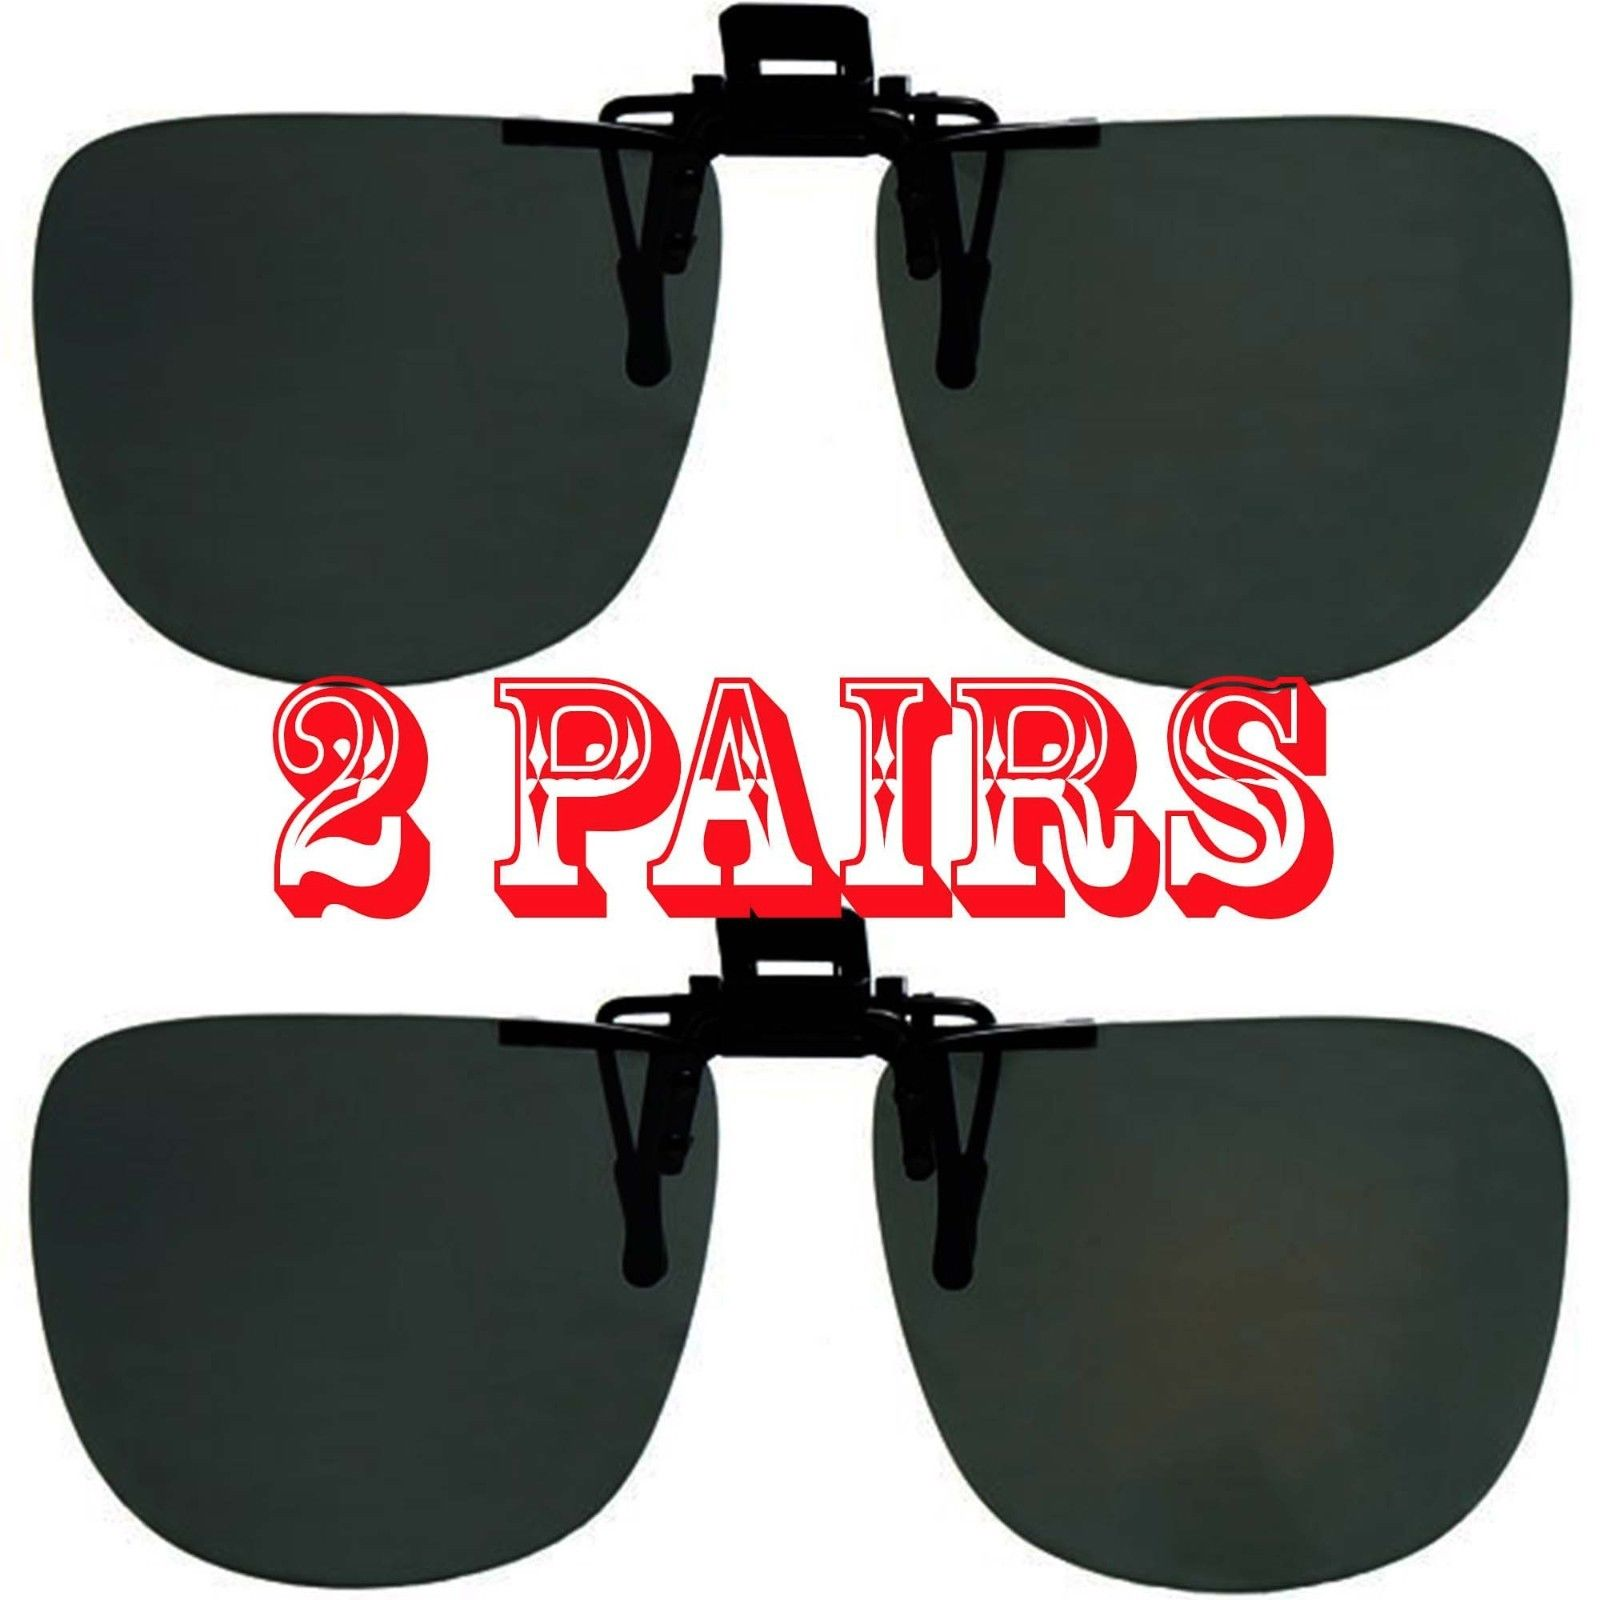 Dark Polarized Lenses Flip Up Clip On for Sunglasses Glasses Outdoor Driving